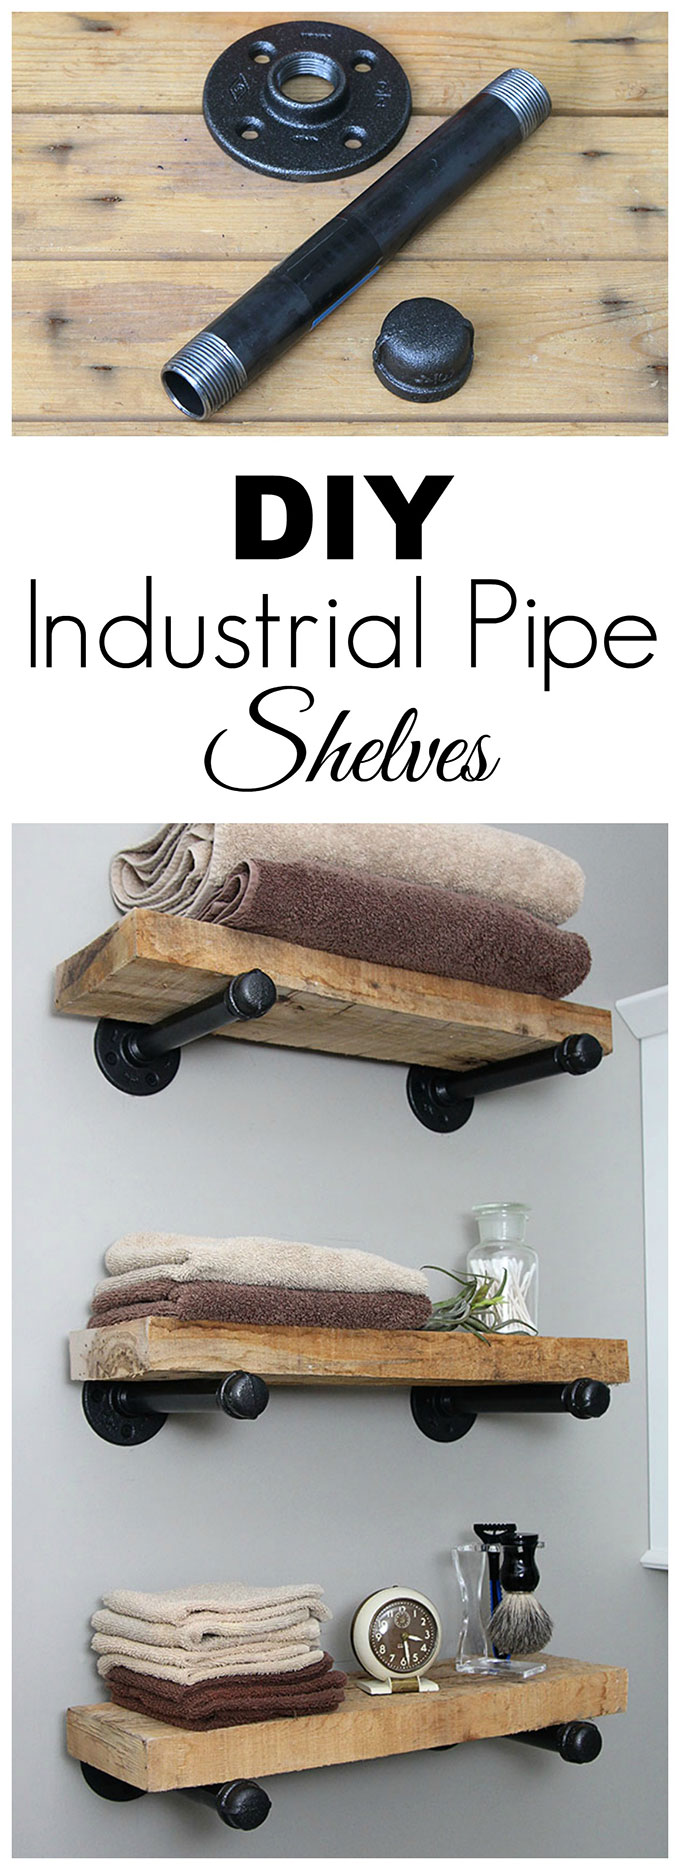 Super easy step by step tutorial for how to make DIY industrial pipe shelves at a fraction of the cost of the store bought version. These would look great with both farmhouse and industrial home decor! #diyproject #industrialstyle #DIYHomeDecor #industrialdecor #homedecorideas